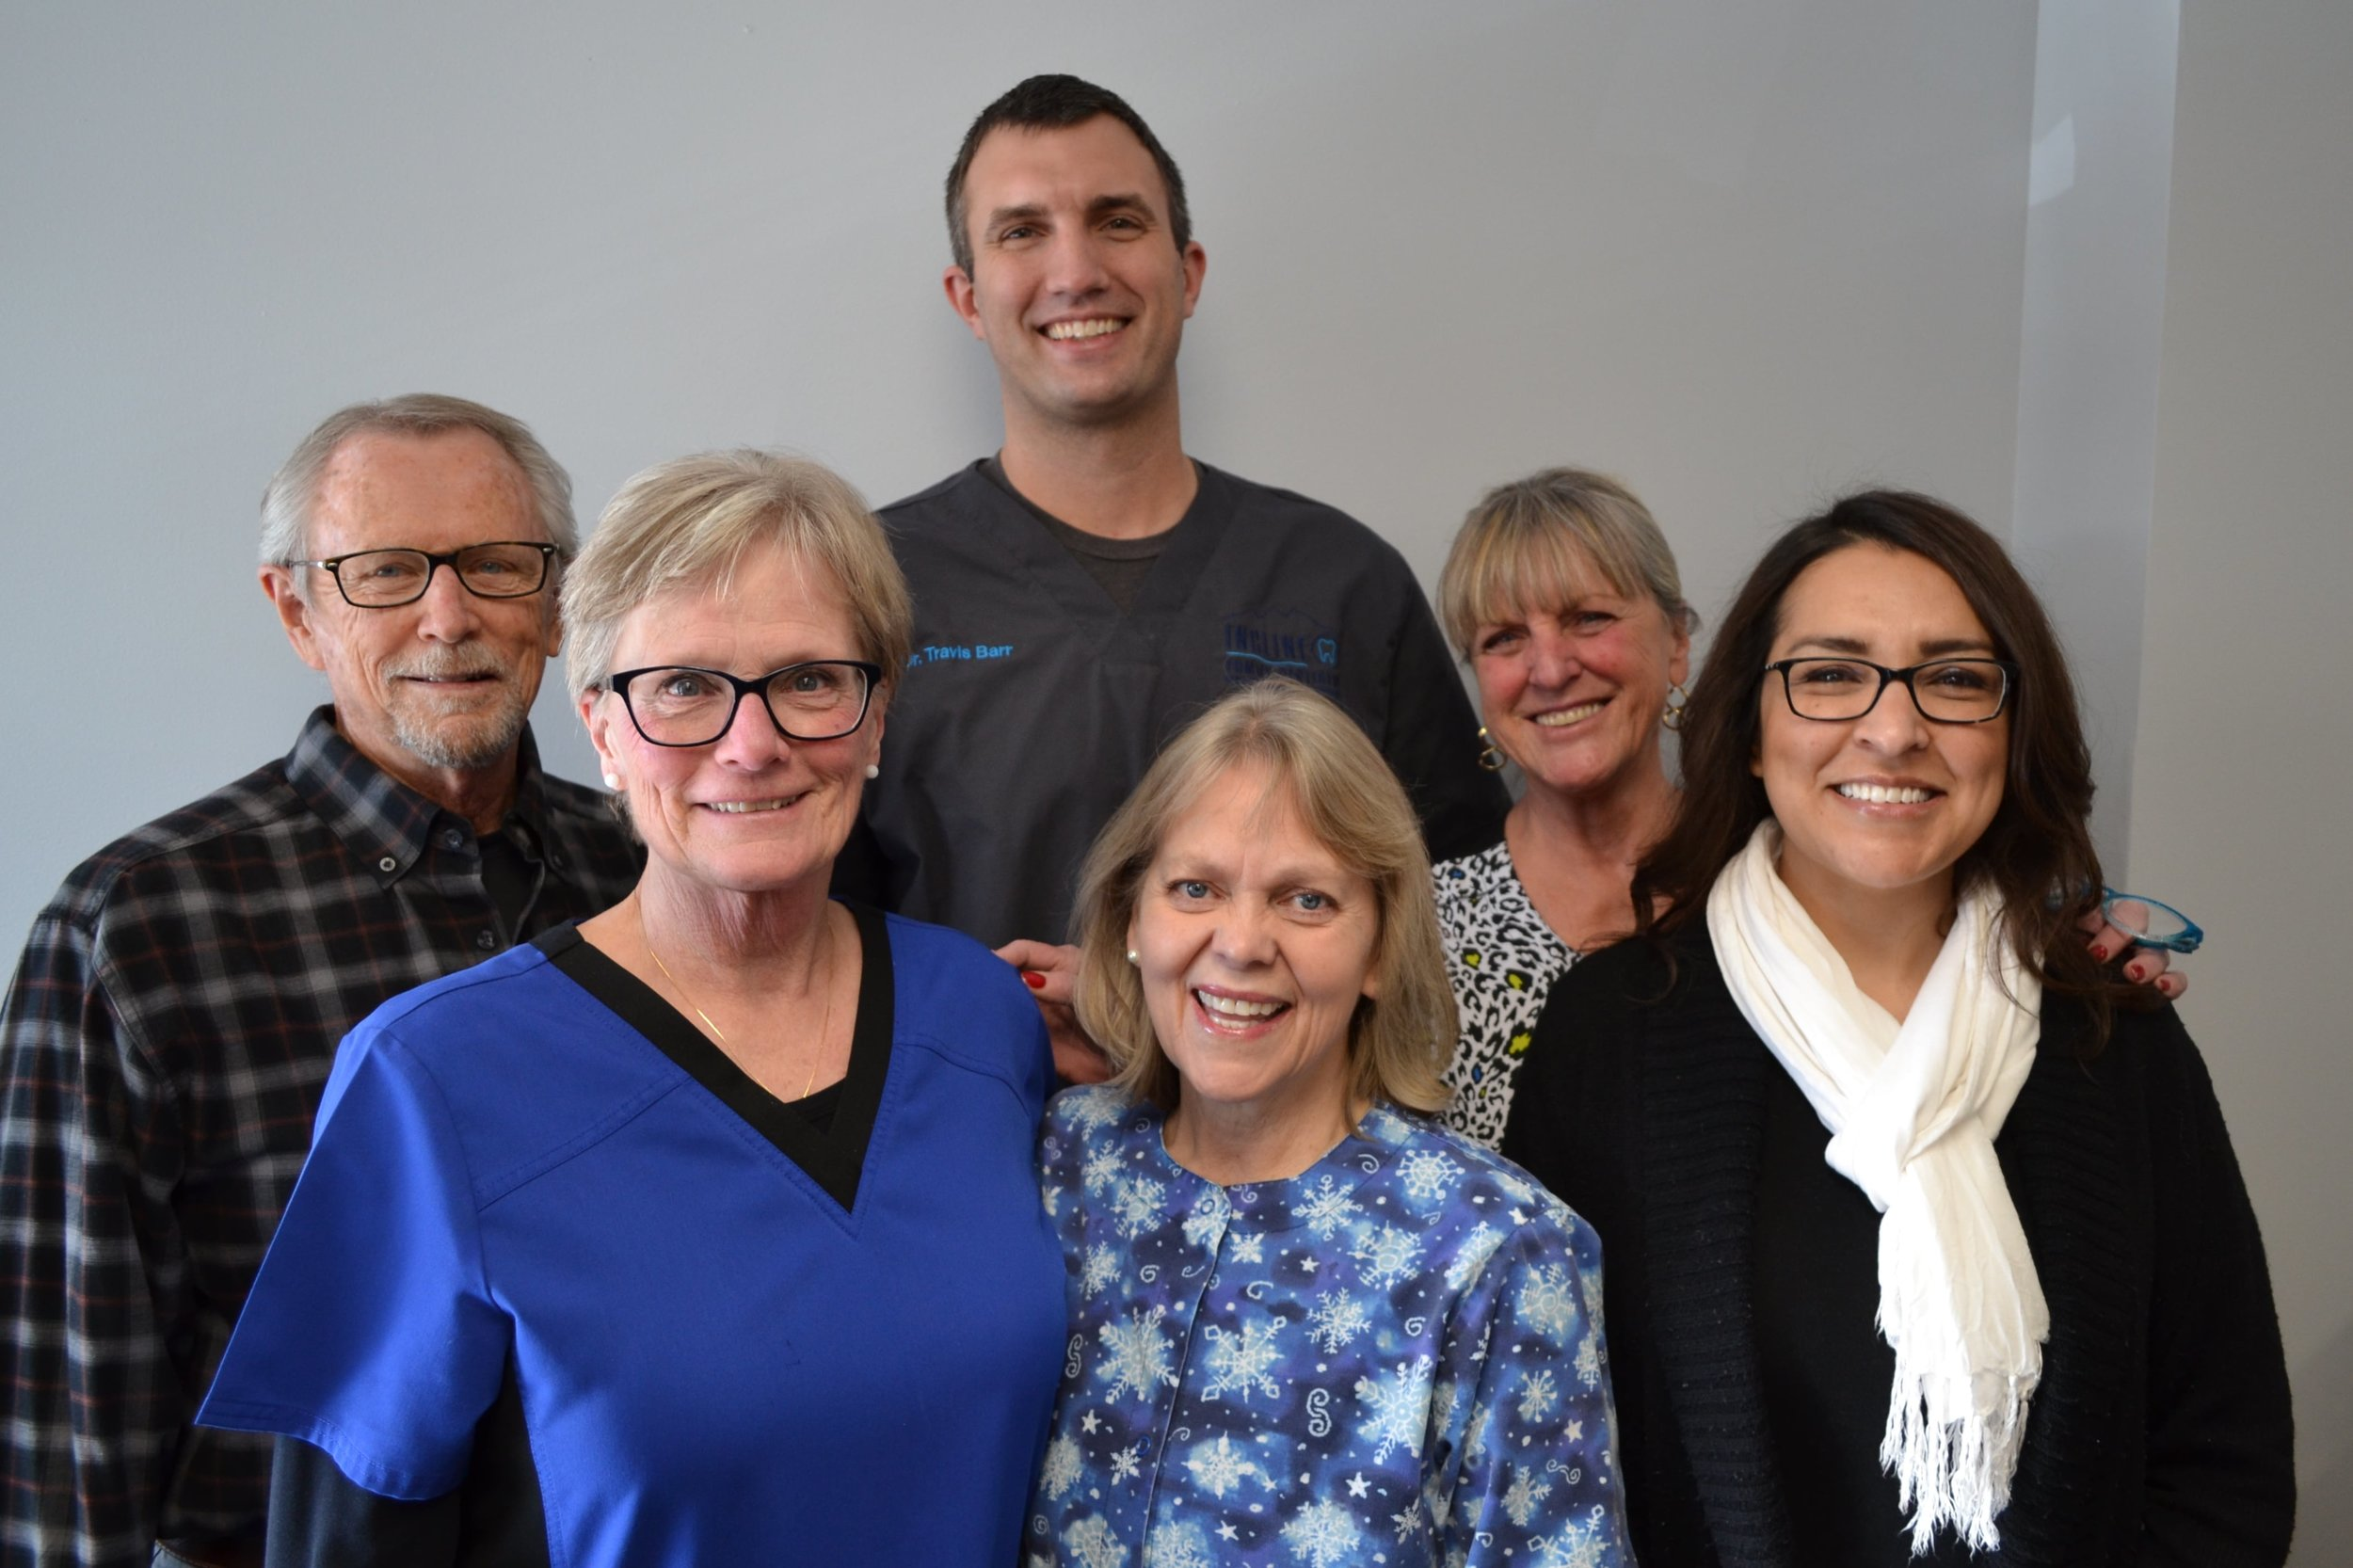 The Incline Family Dentistry Team - We can't wait to meet you!